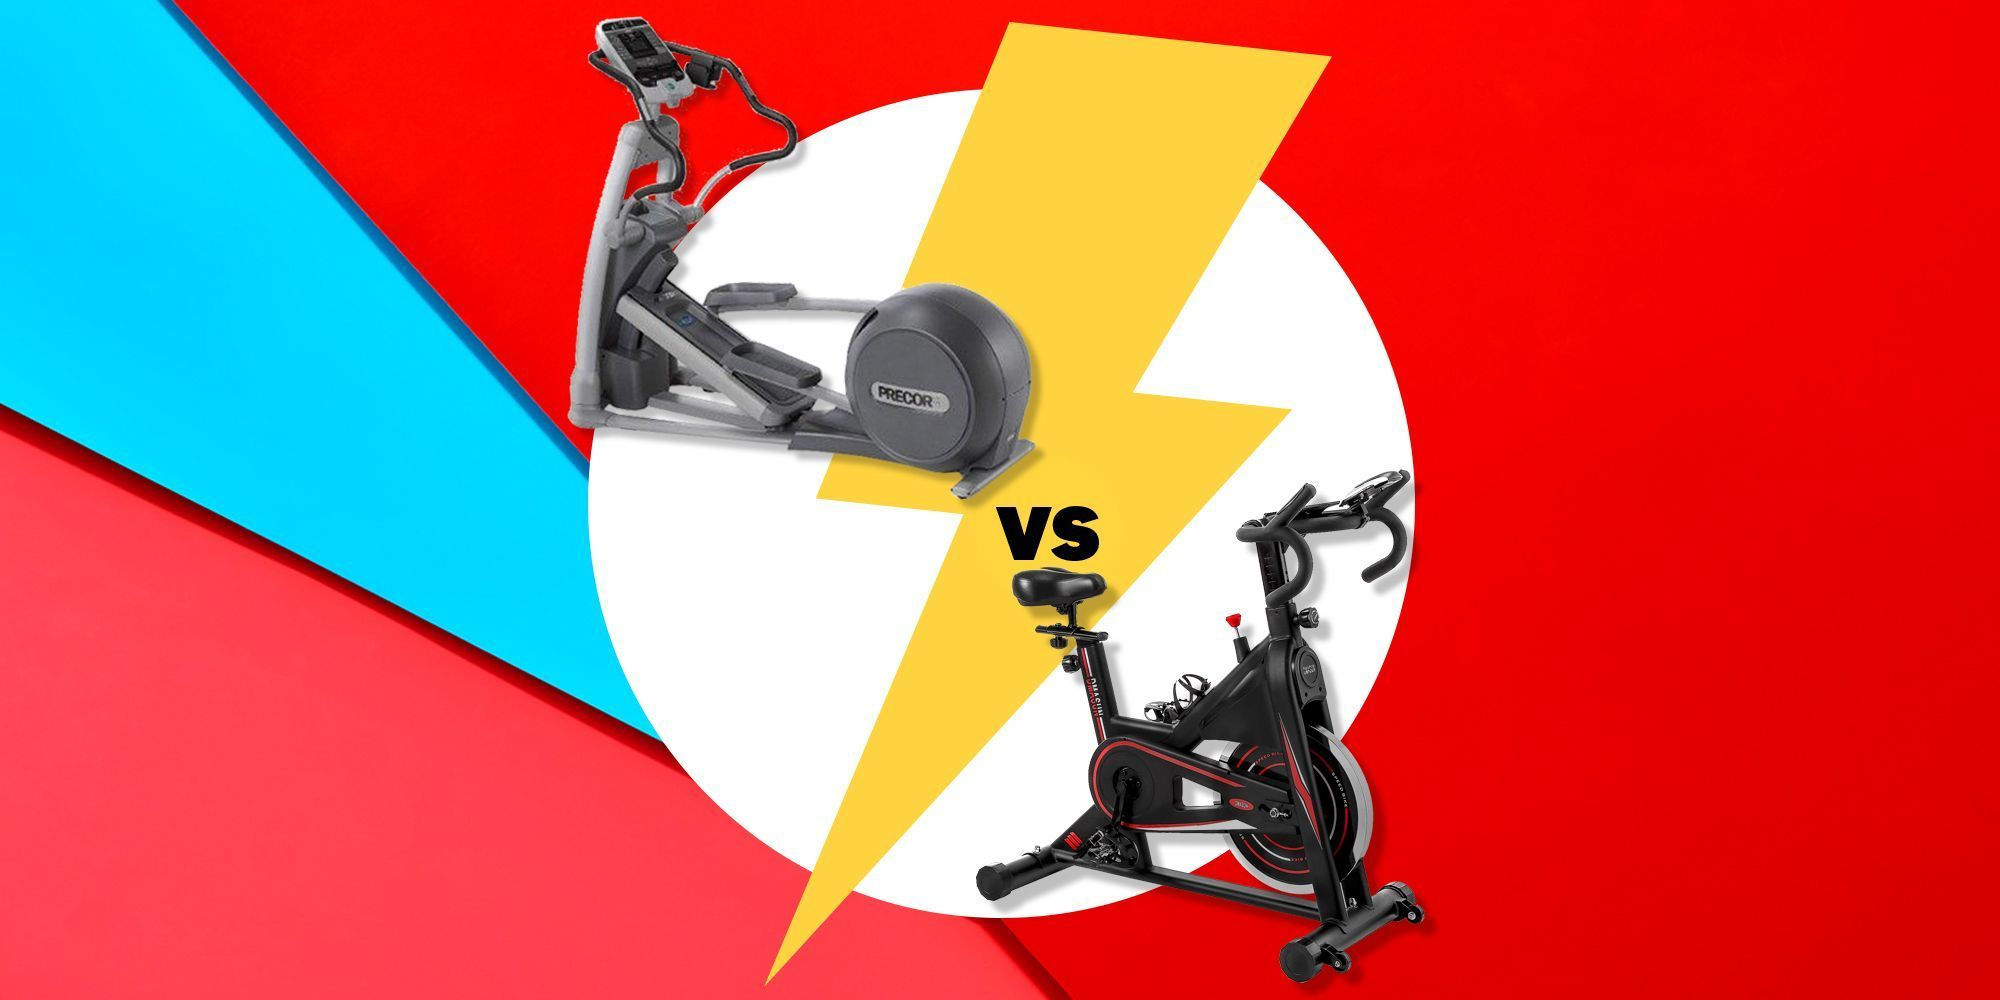 Elliptical vs. Stationary Bike: Which Workout Is Better?